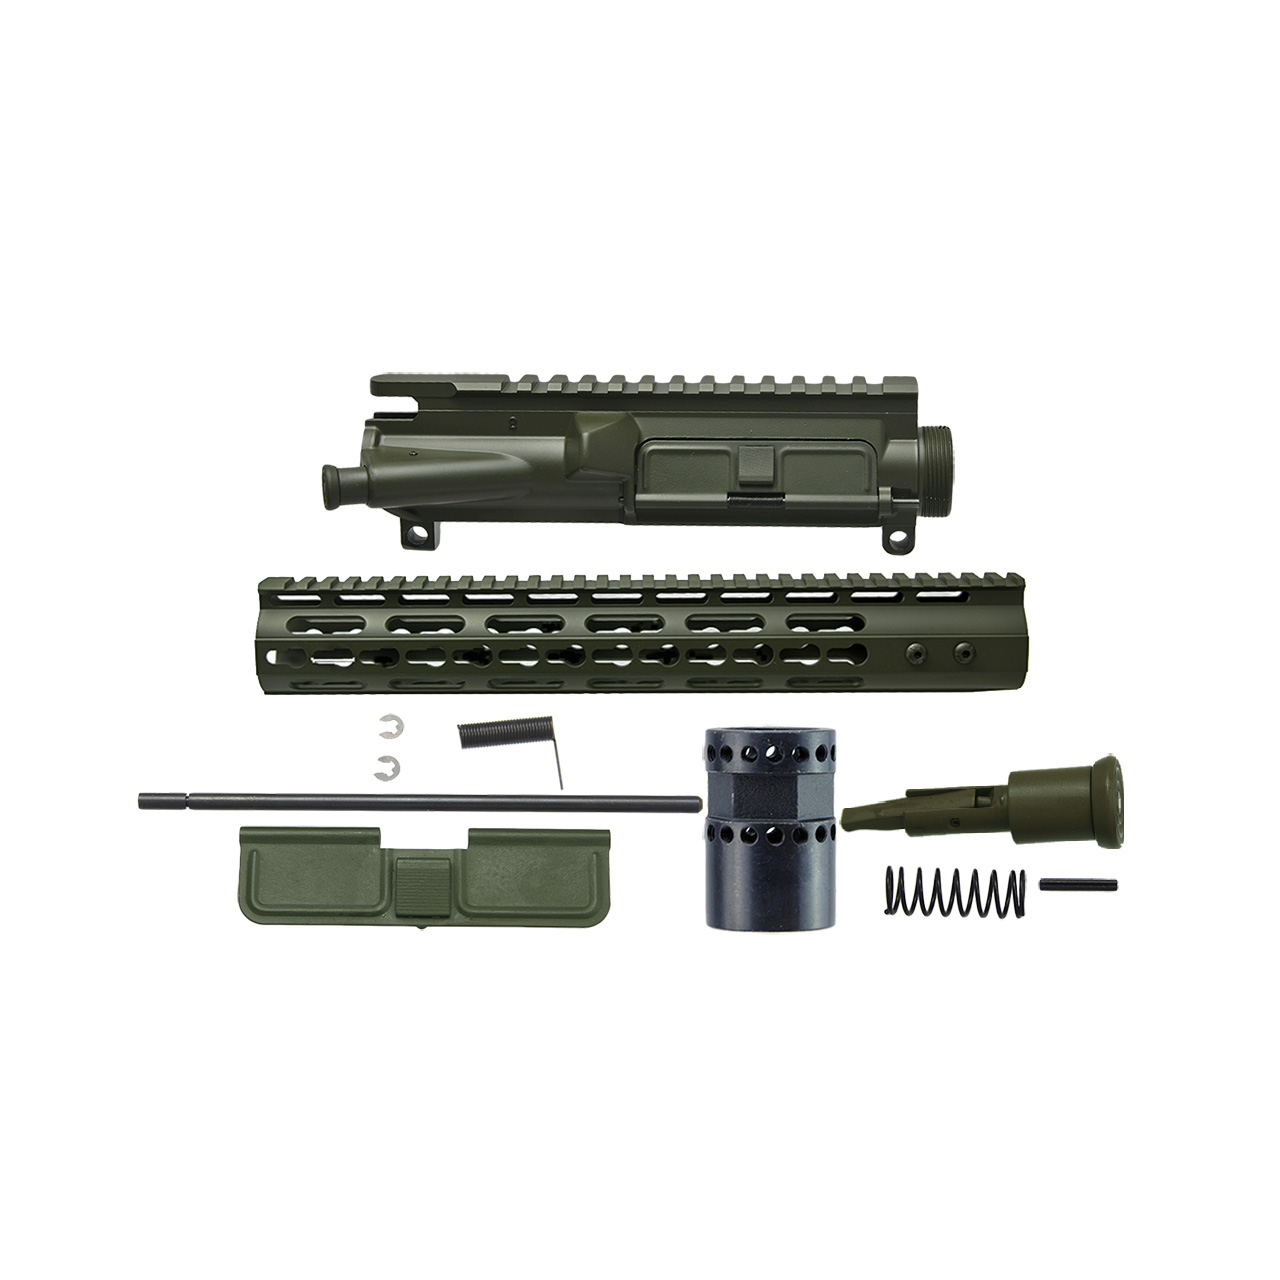 AR15 3 Sided upper receiver Kit, Olive drab green cerakote